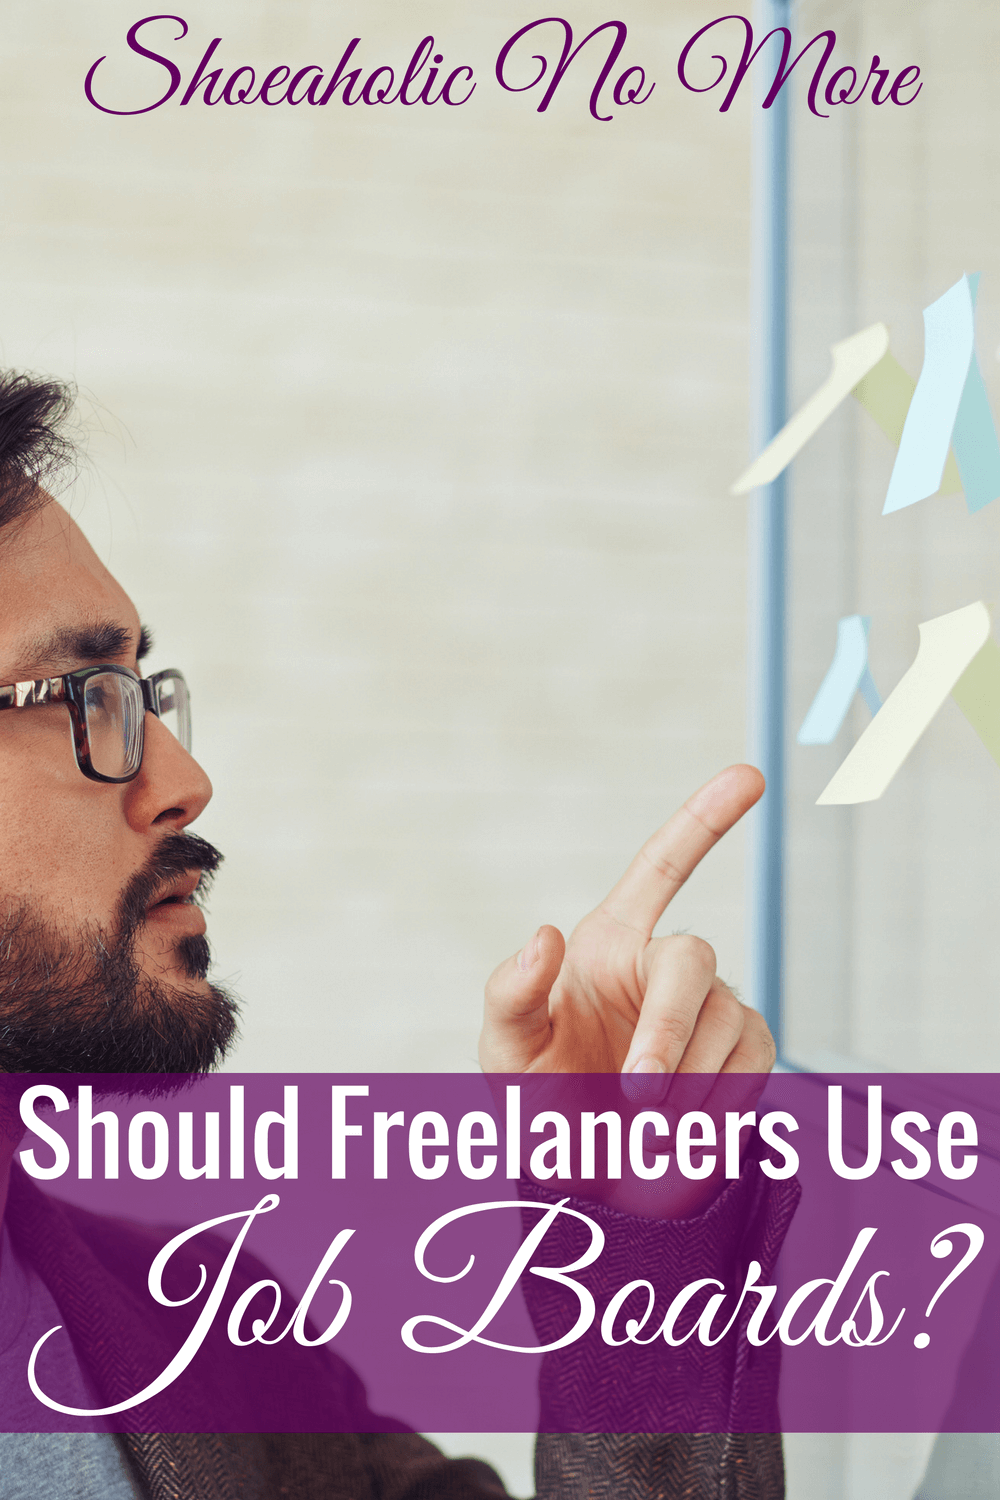 Are job boards really a good solution to starting your business? Find out if this successful freelancer recommends job boards for freelance writers.